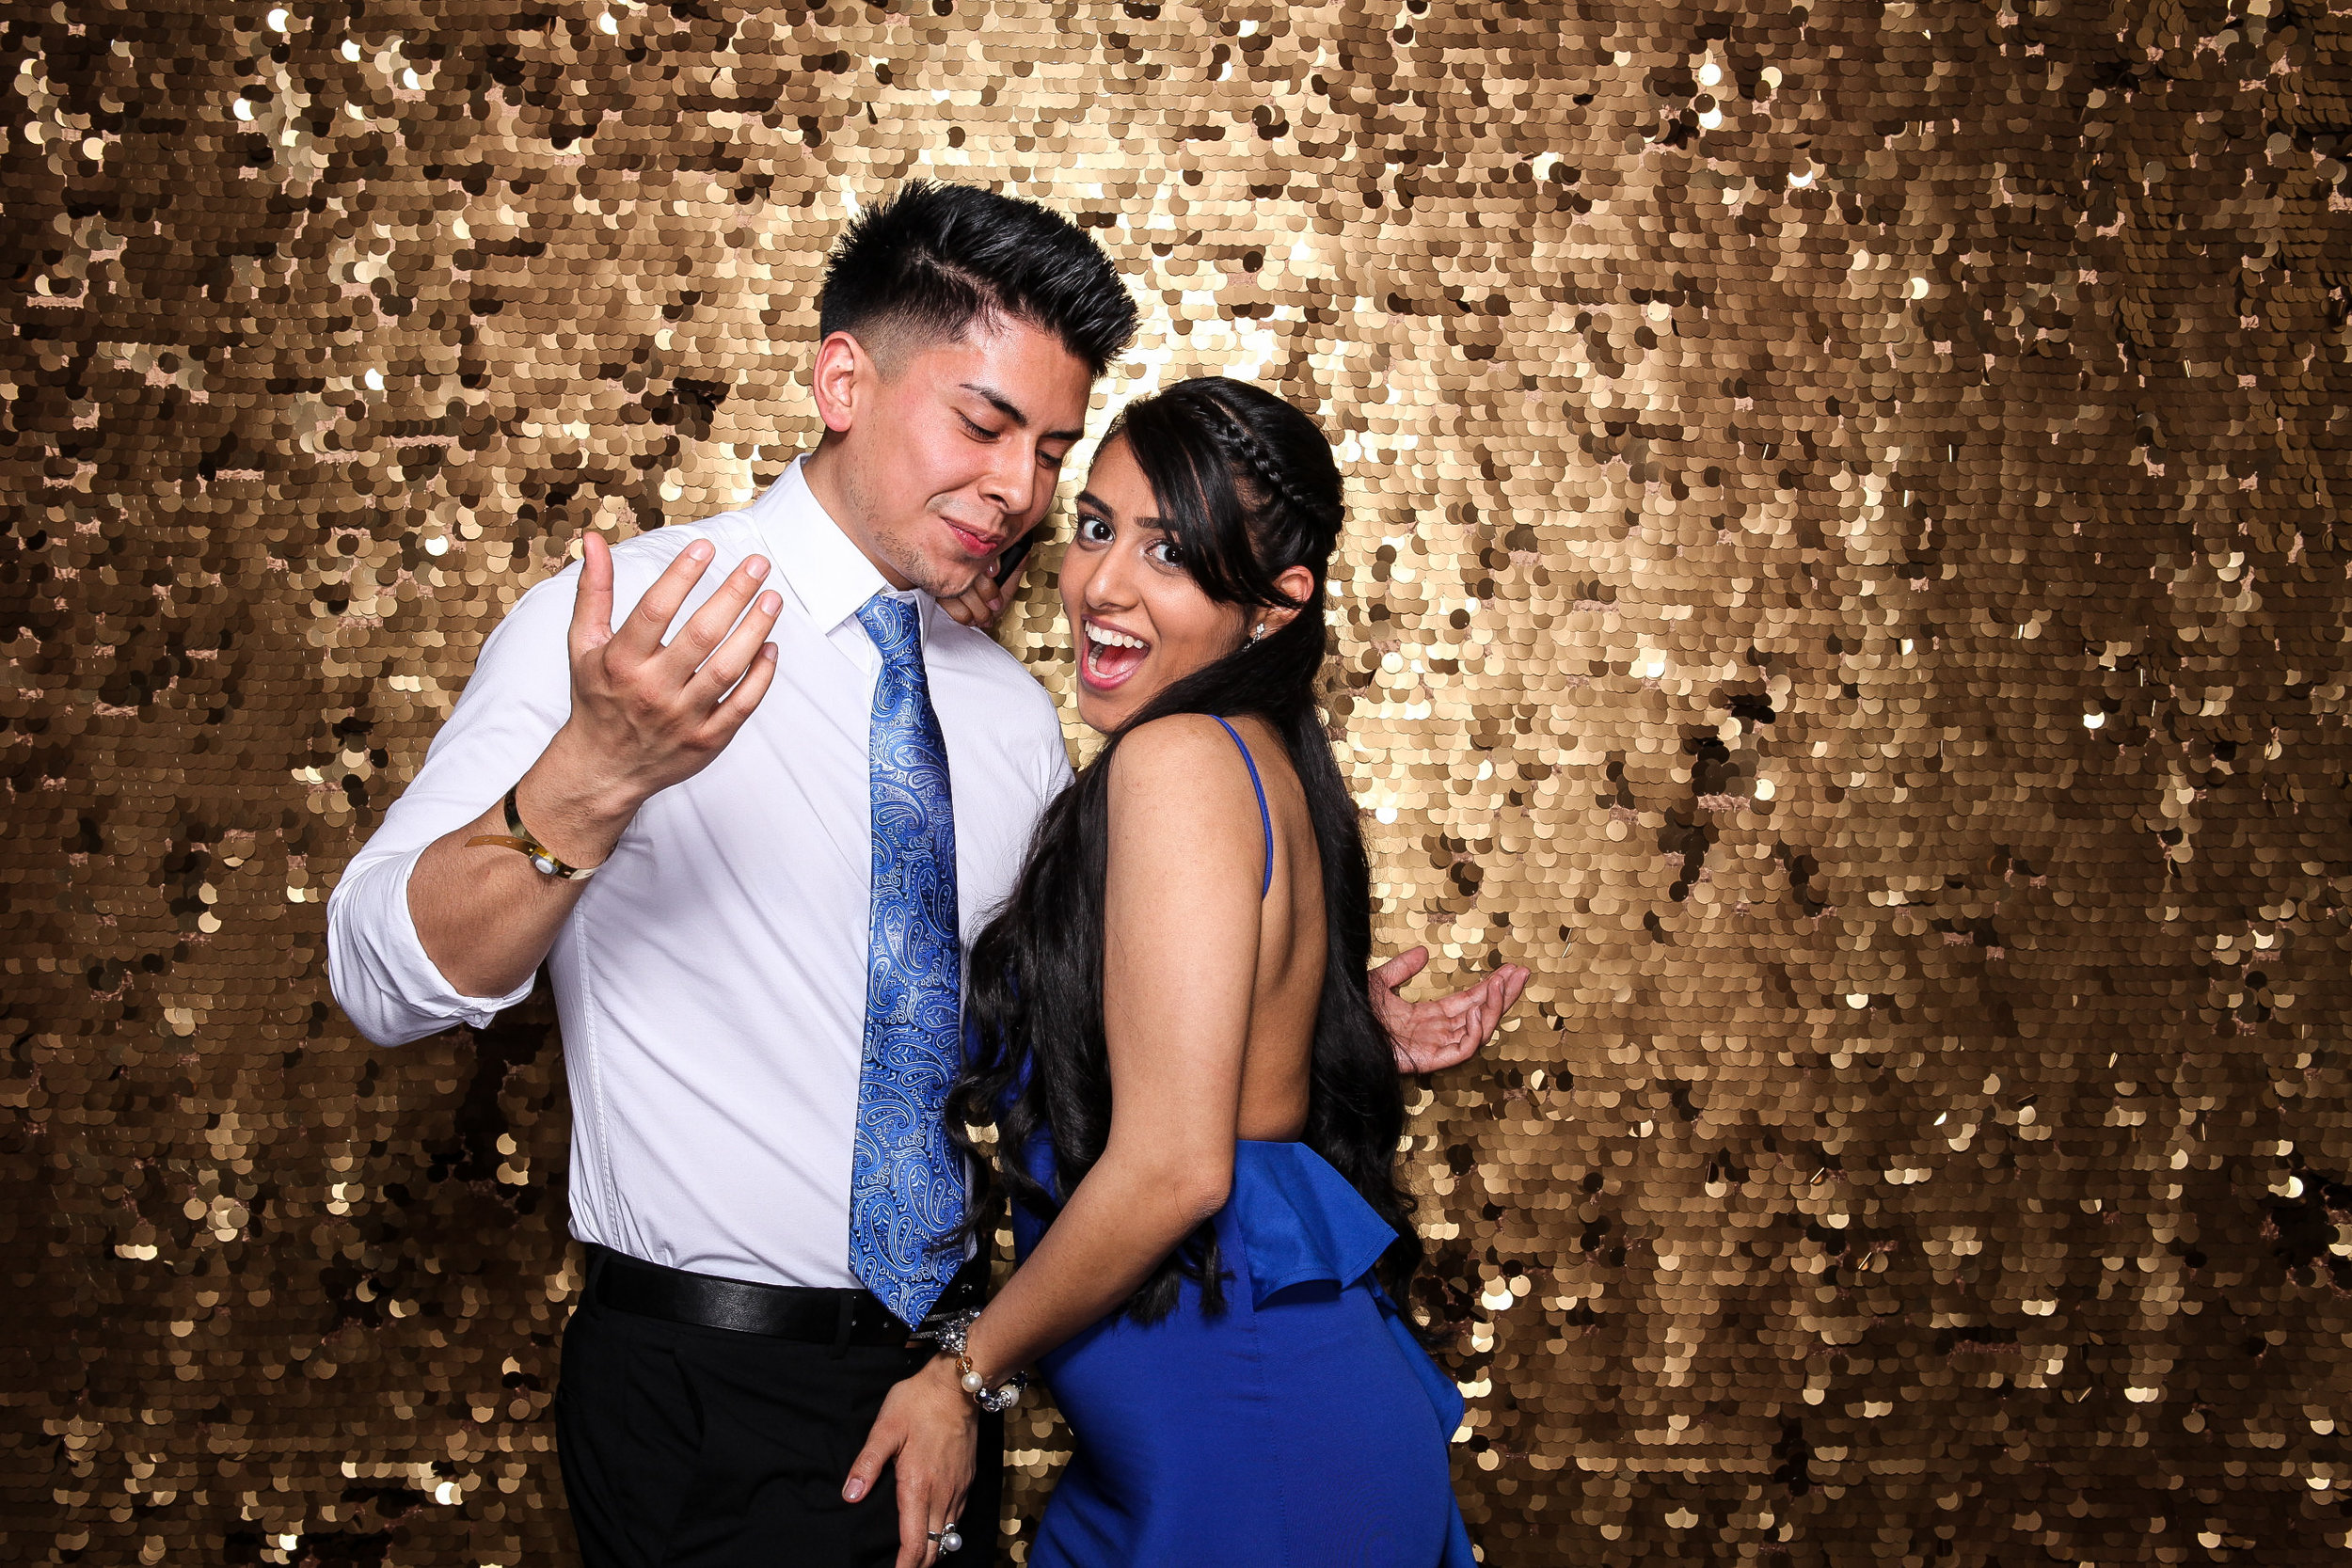 20190503_Adelphi_Senior_Formal-278.jpg